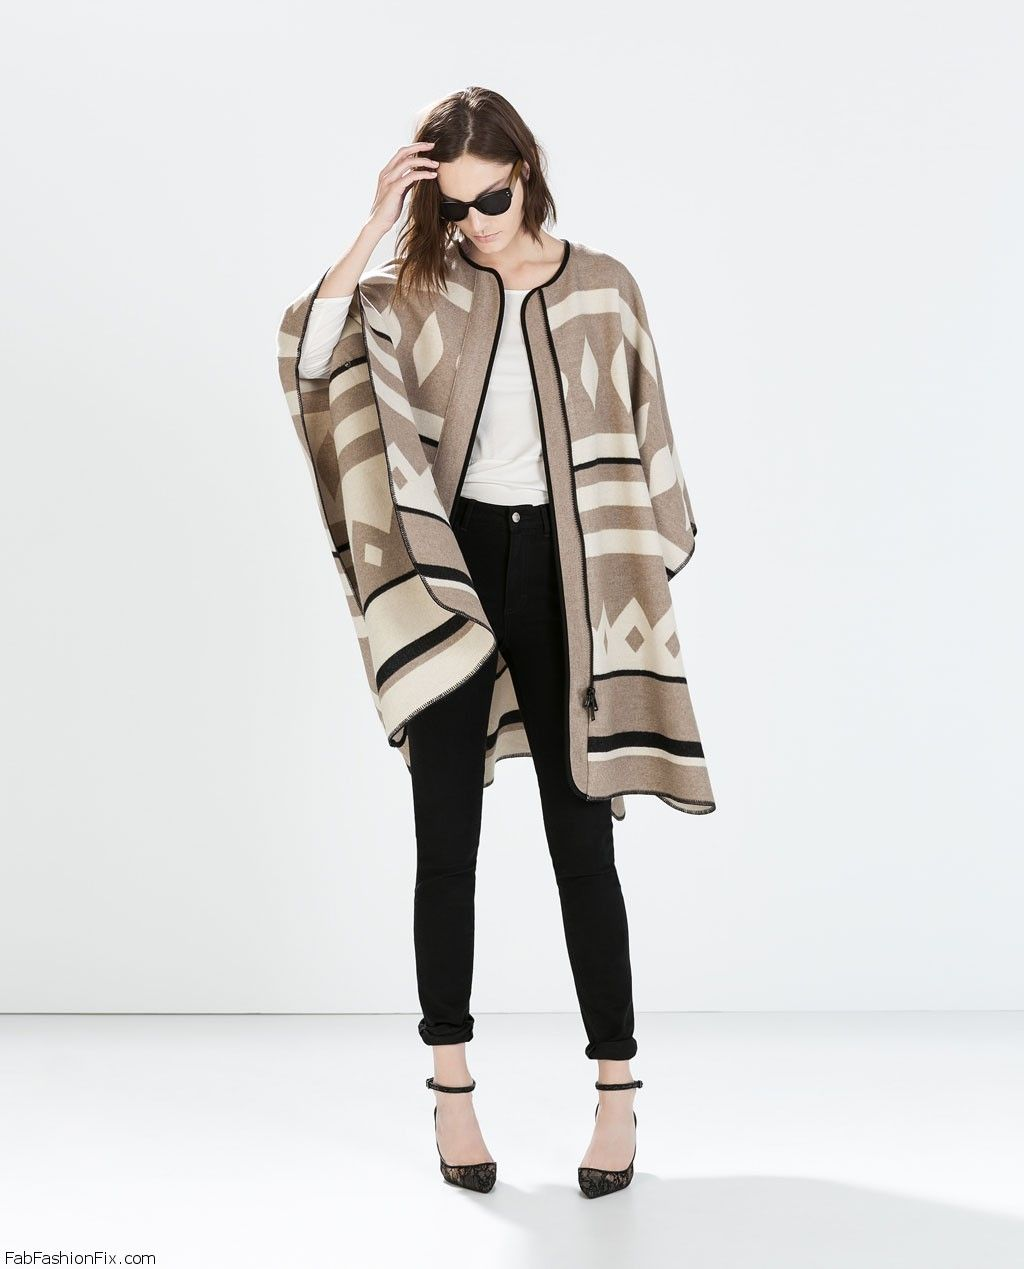 style guide how to wear the blanket coat trend this fall learn from celebrities fab fashion fix. Black Bedroom Furniture Sets. Home Design Ideas